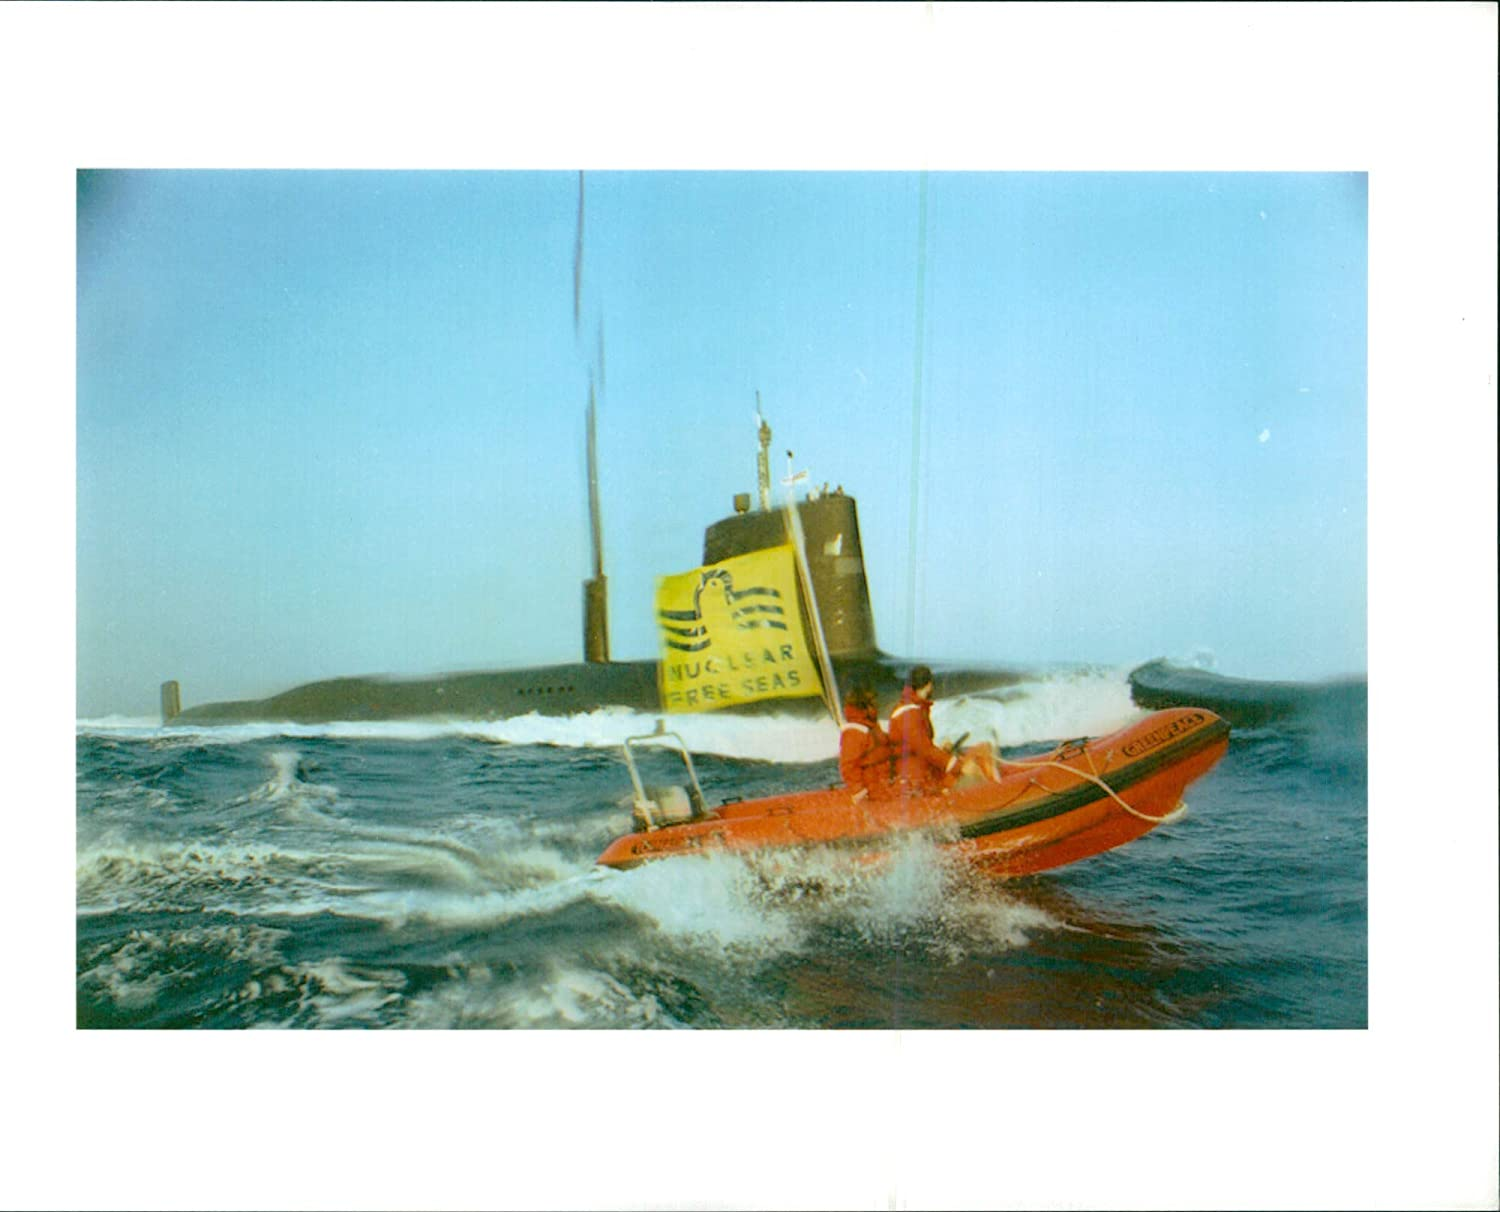 Fotomax Vintage Photo of Vanguard Sub:protesters from The Action Group Greenpeace.